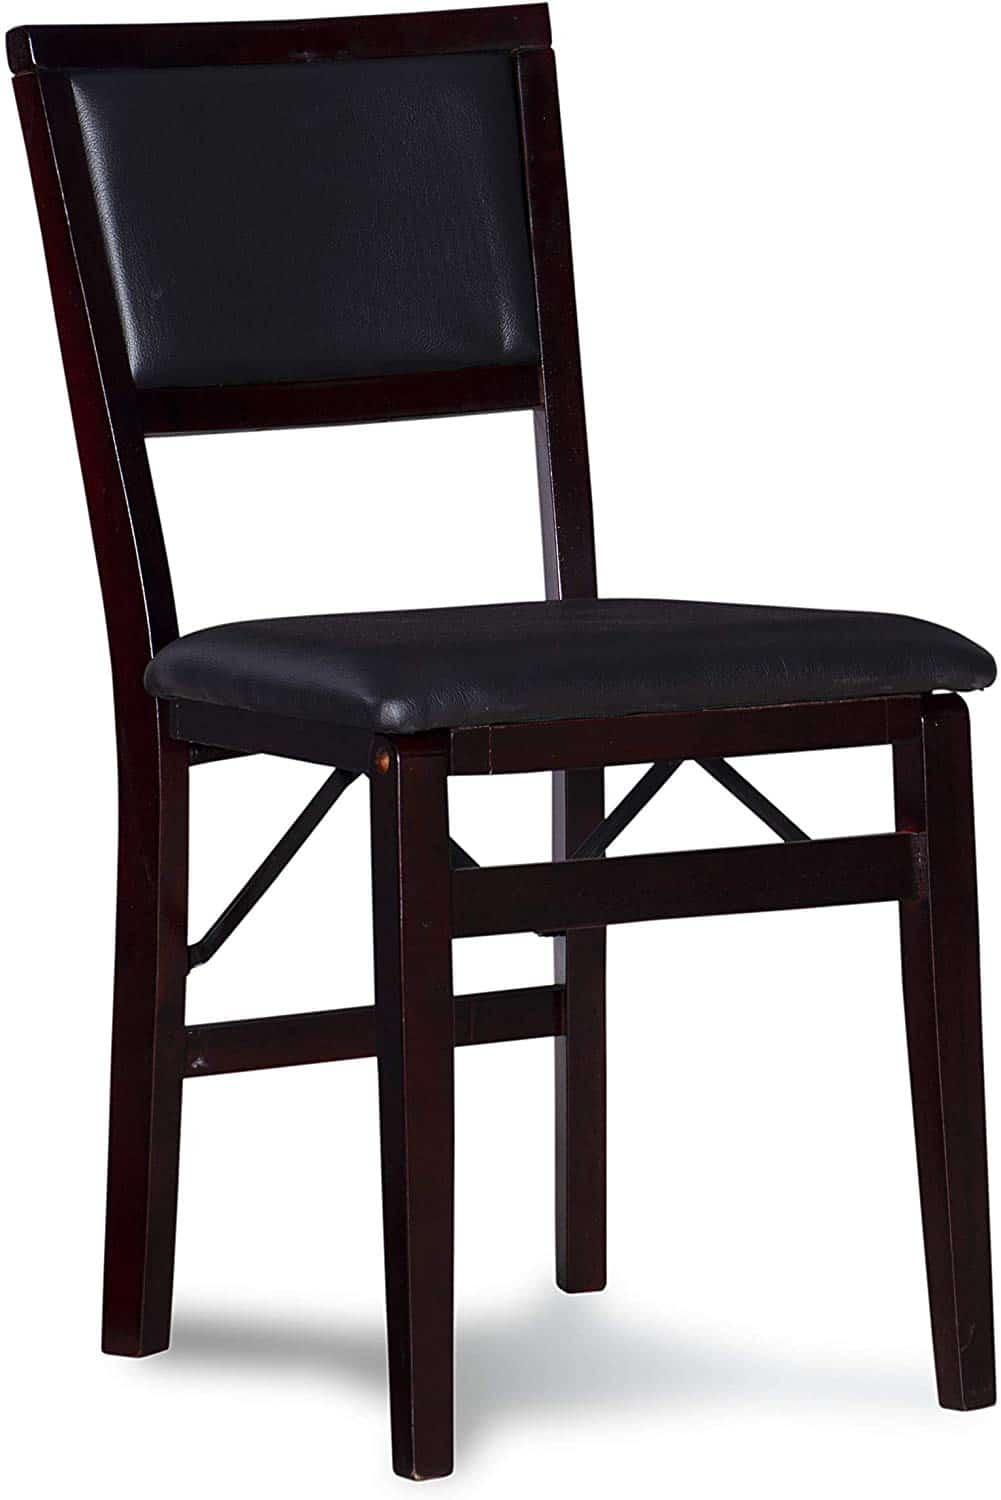 Linon Keira Pad Folding Chair